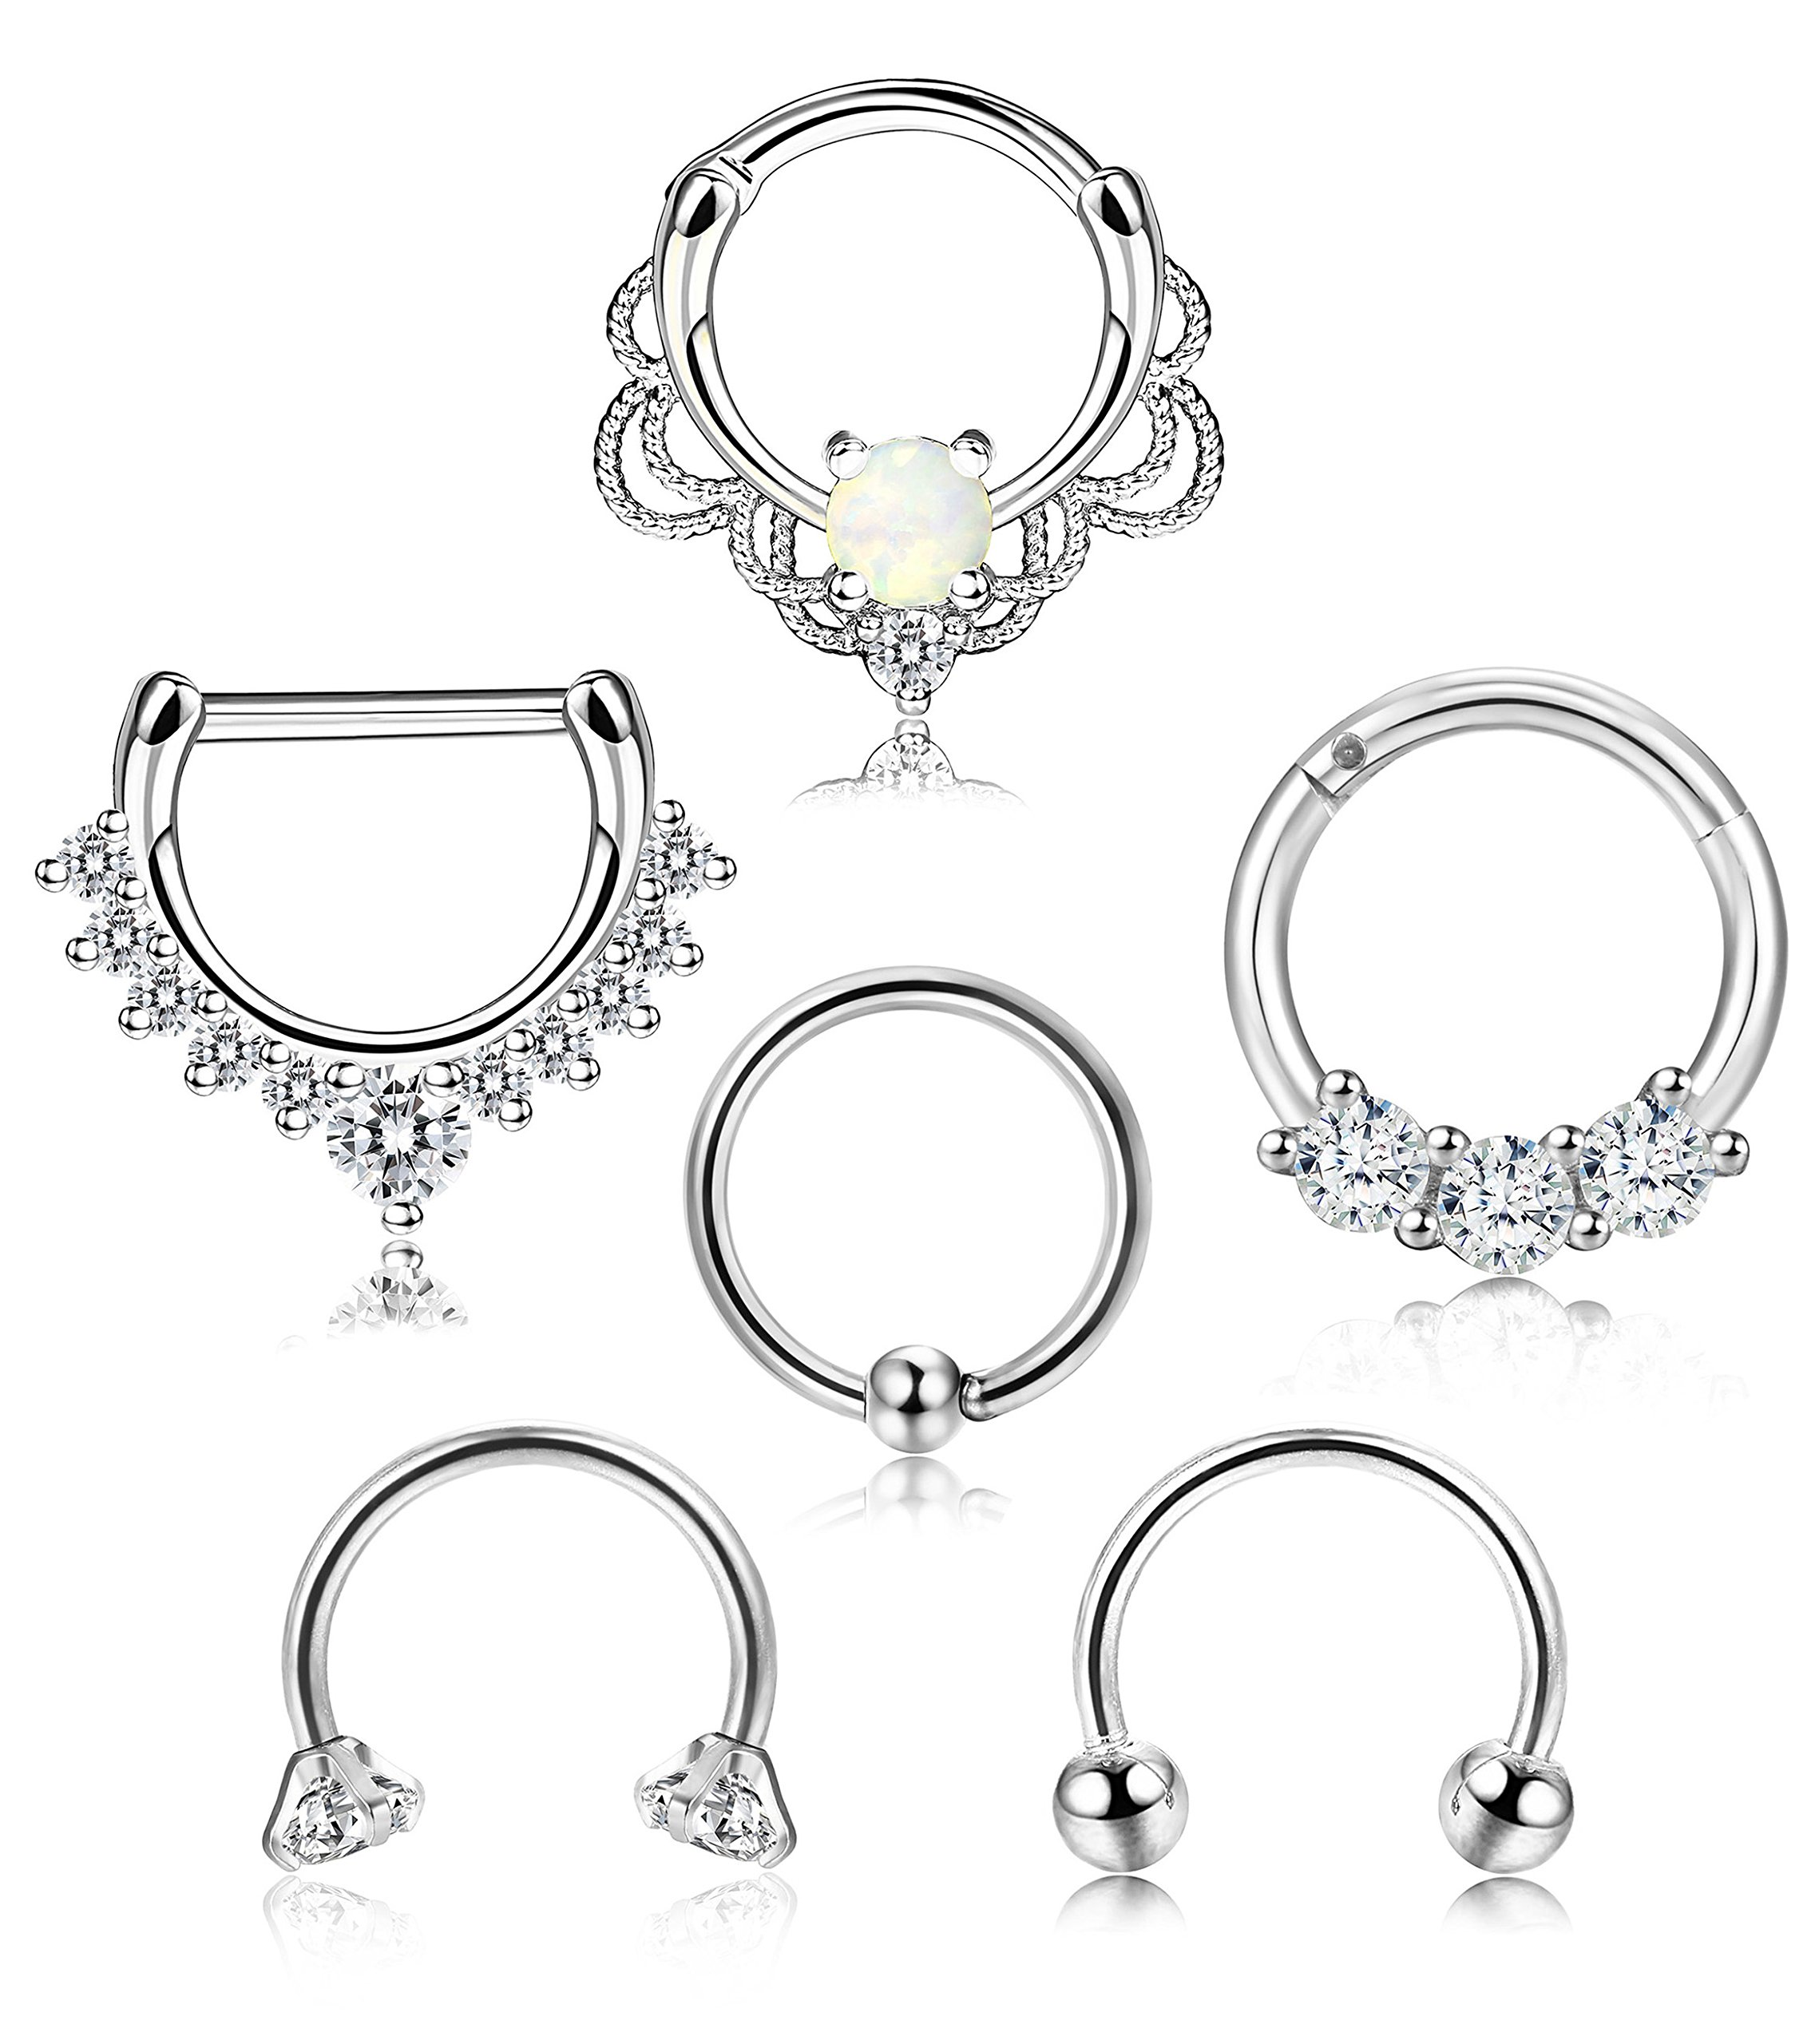 BodySparkle Body Jewelry Set of Two Clear 20g-18g-16g-14g Captive Bead Rings-Daith Earrings-Nipple-Lip Ring Piercing Hoop